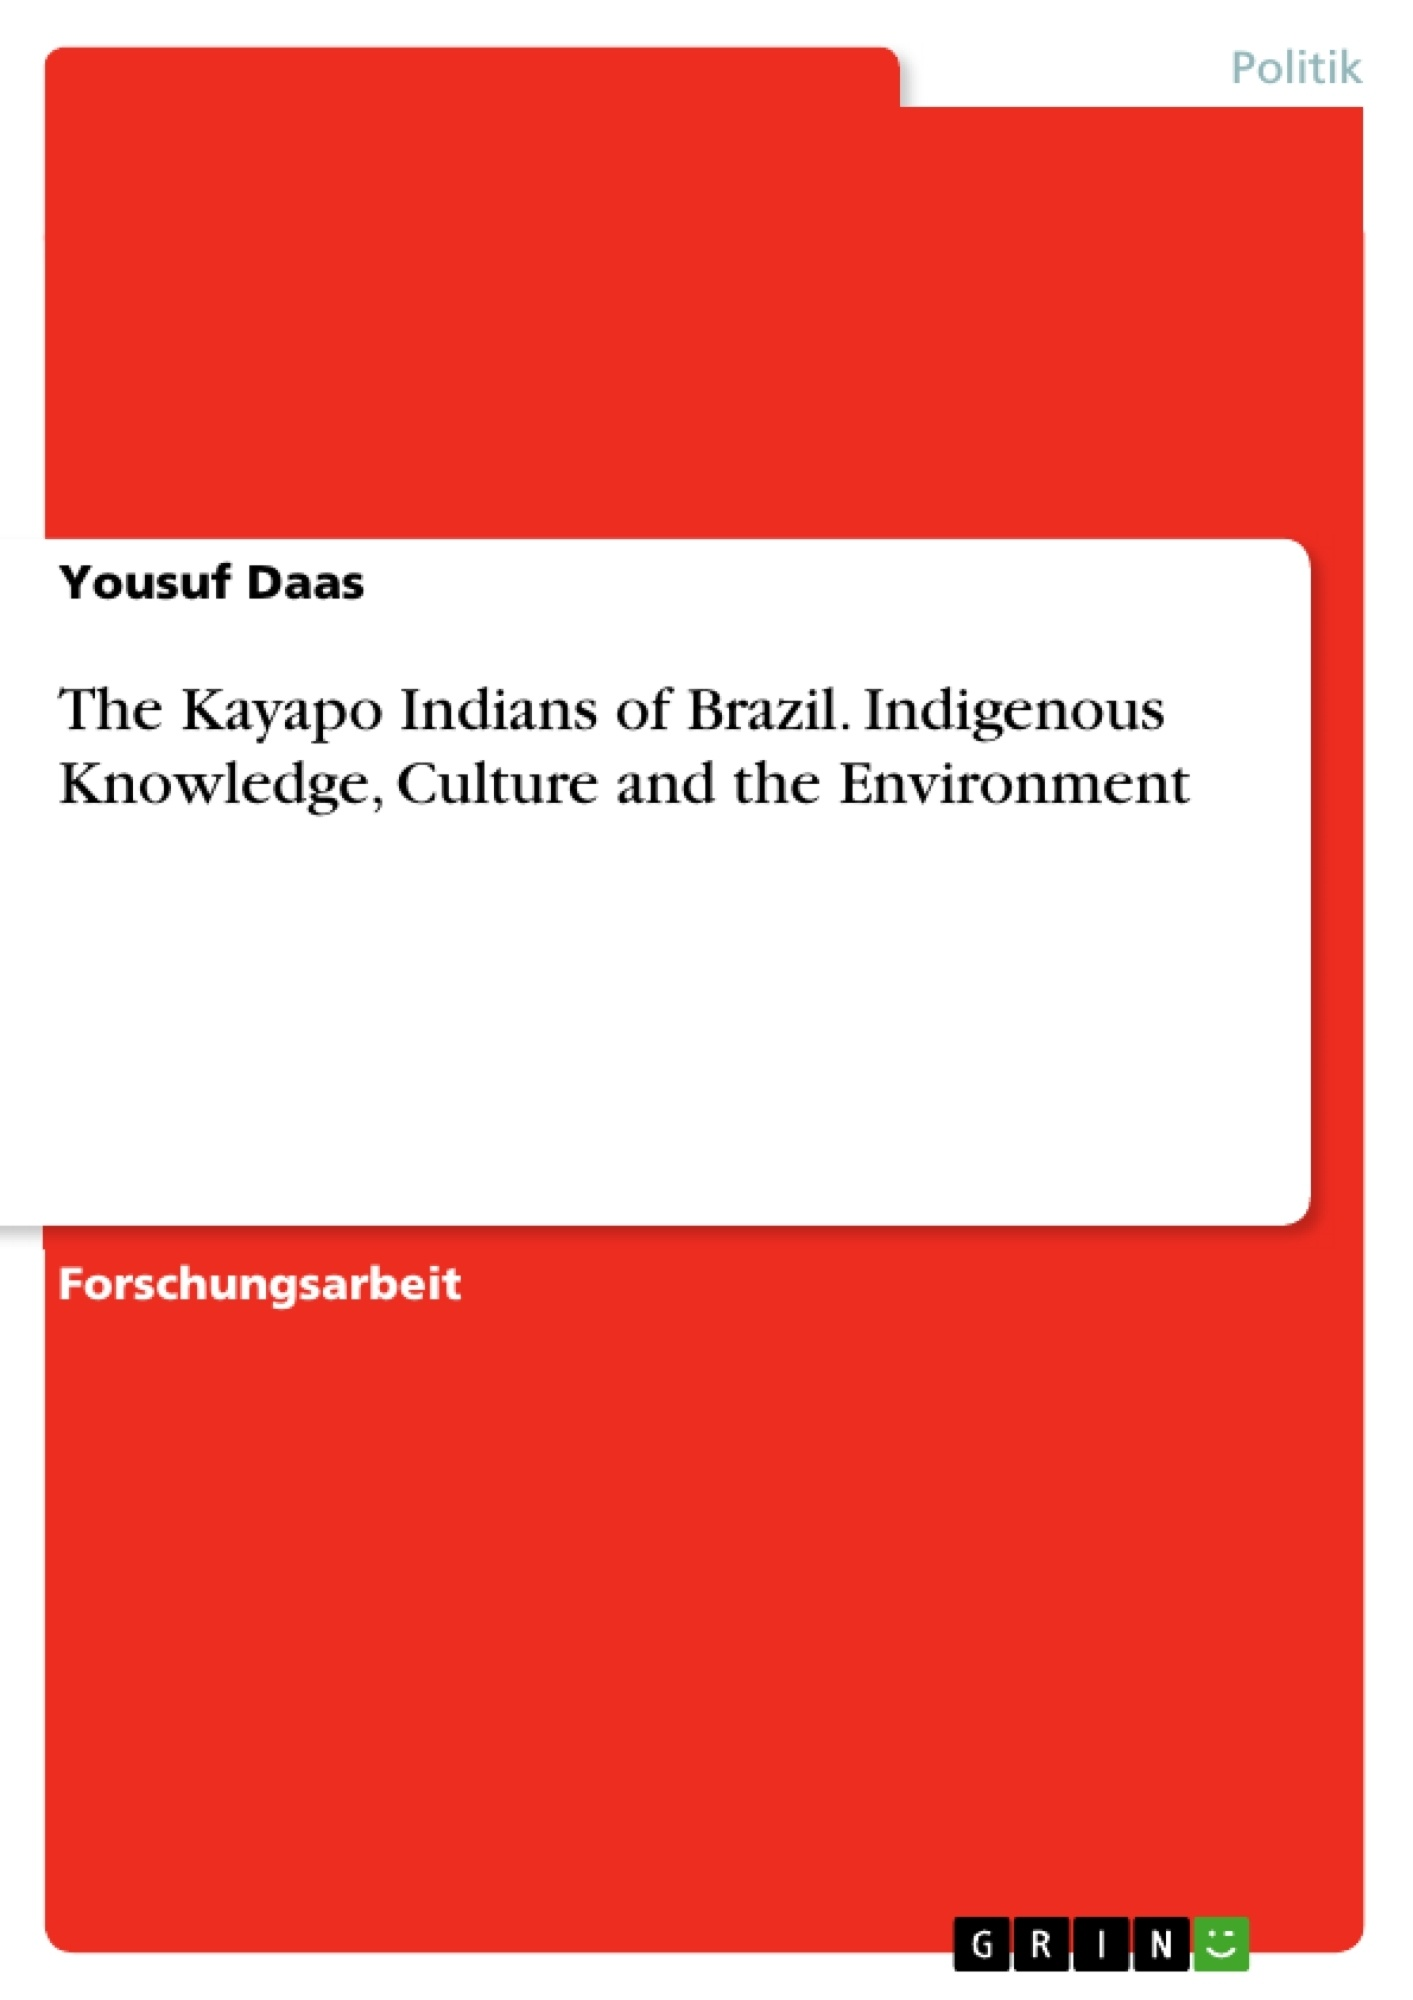 Titel: The Kayapo Indians of Brazil. Indigenous Knowledge, Culture and the Environment